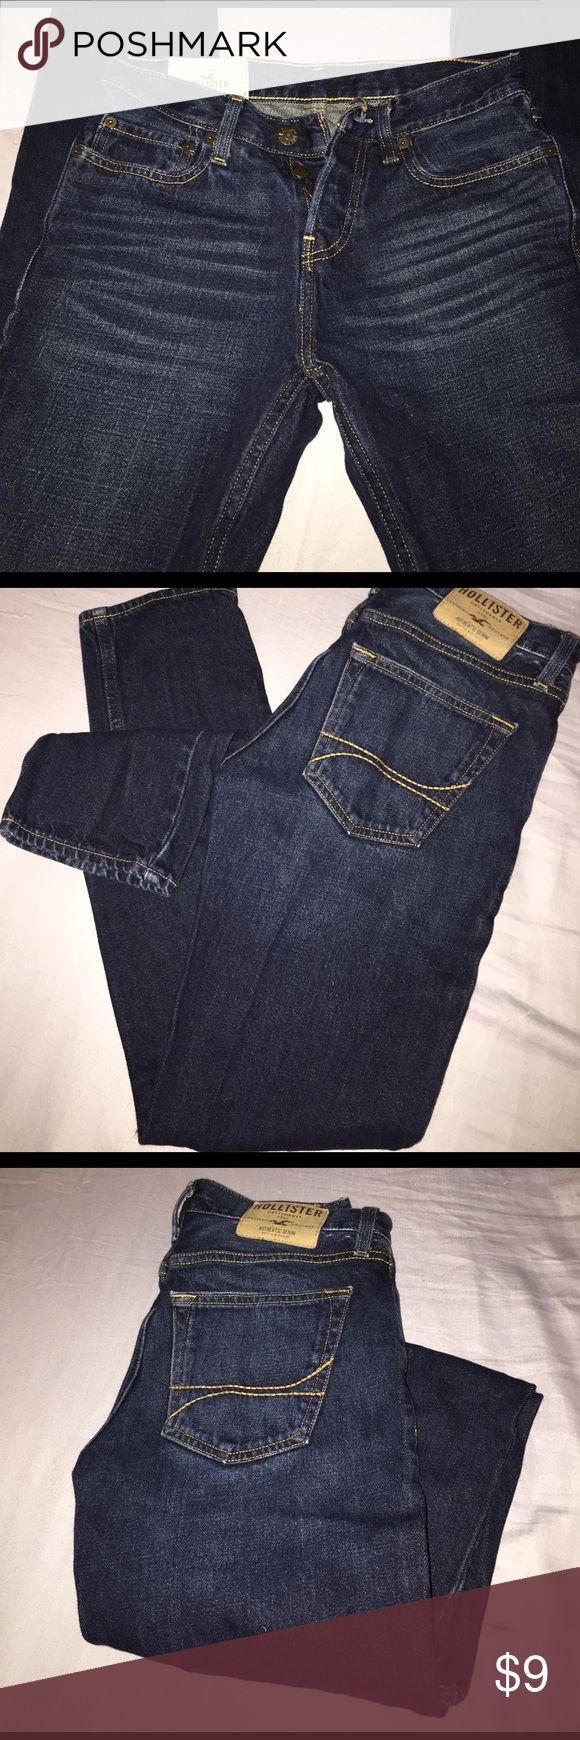 hollister jeans for boys - photo #31